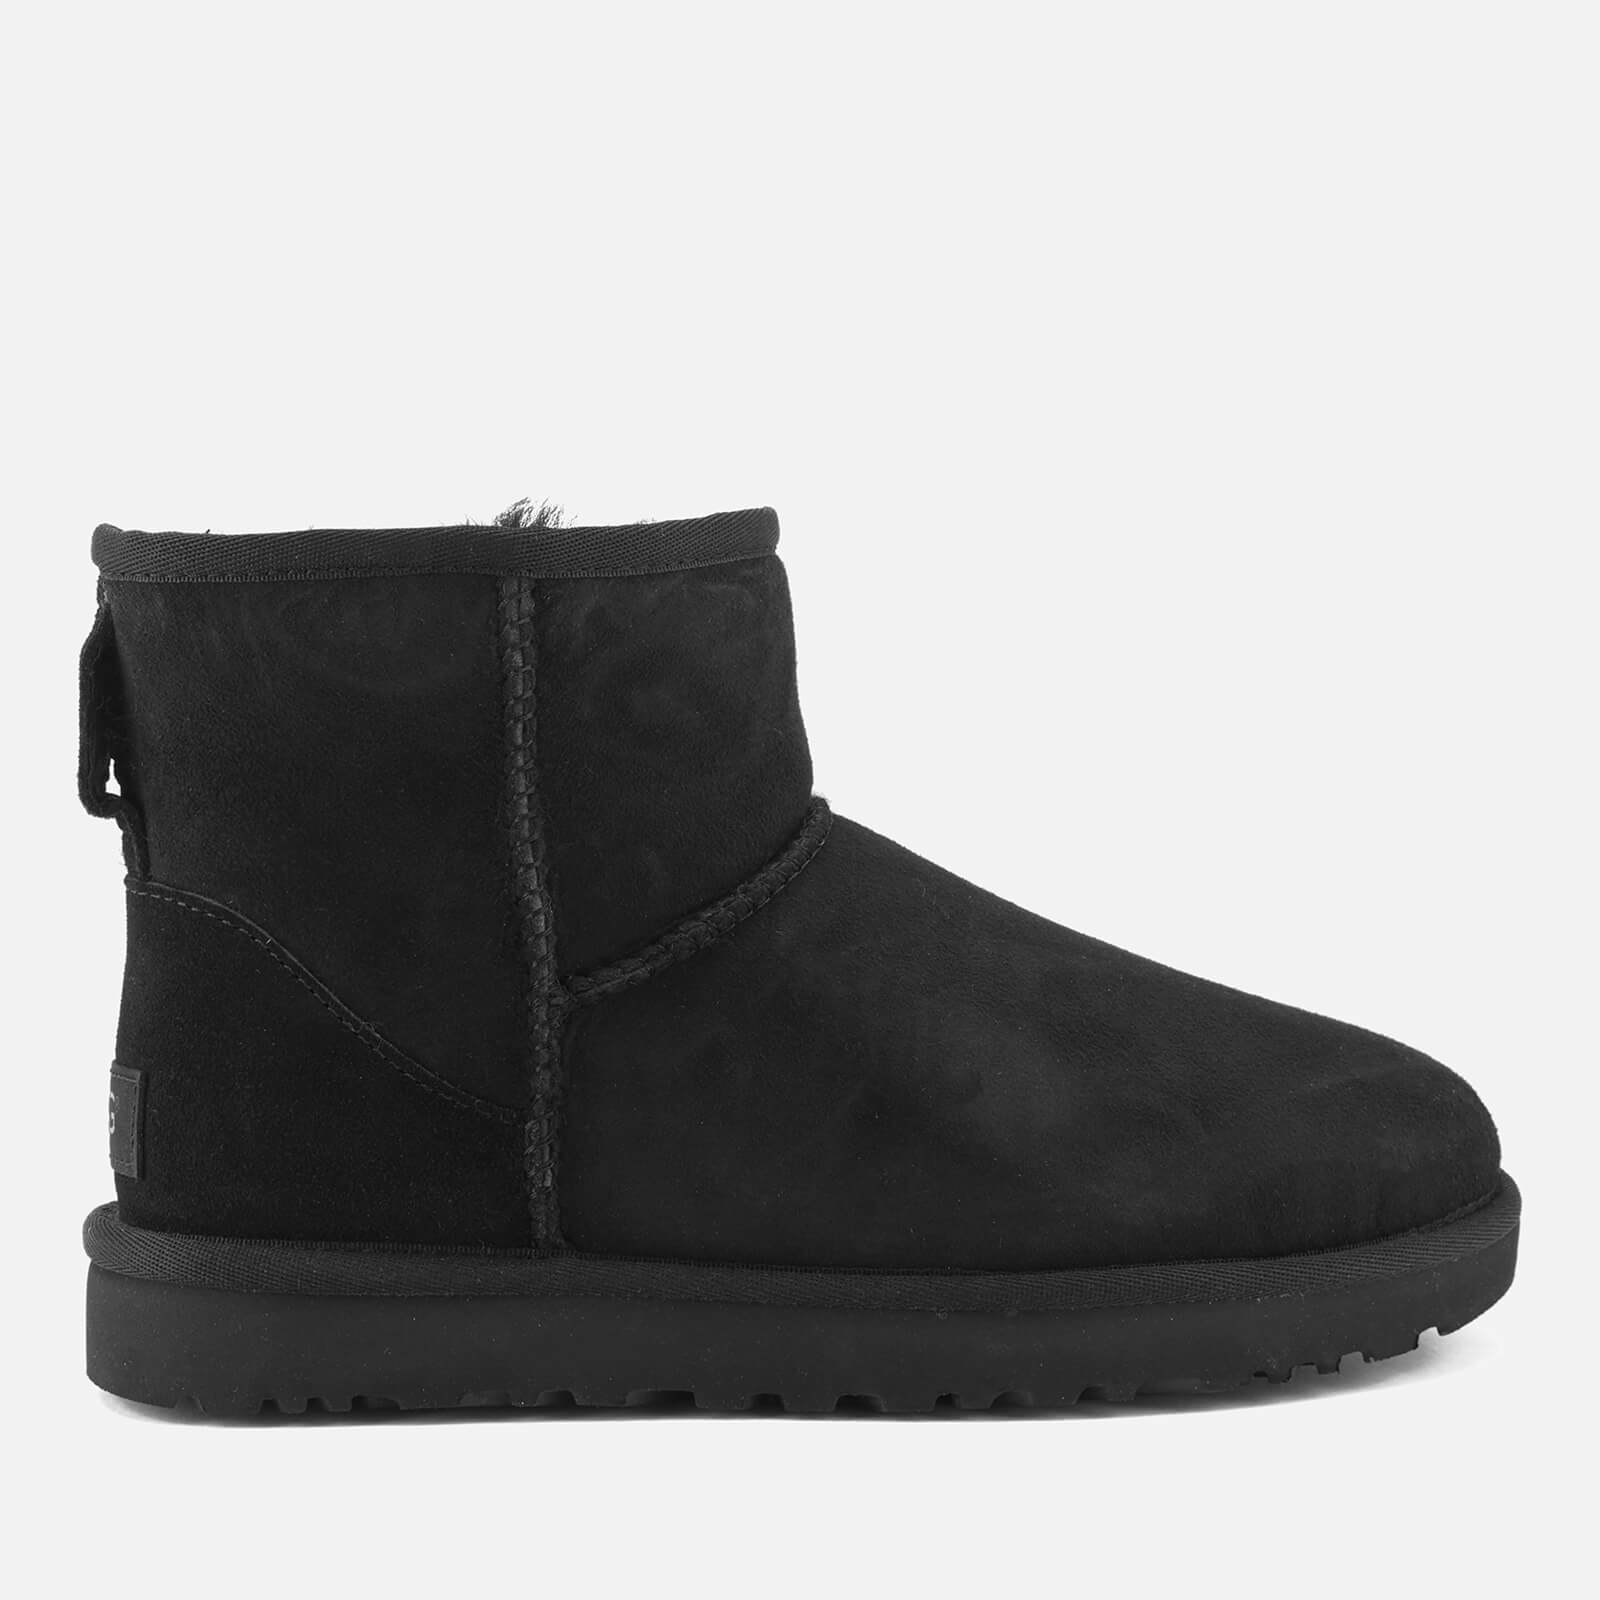 ba1d93430df UGG Women's Classic Mini II Sheepskin Boots - Black